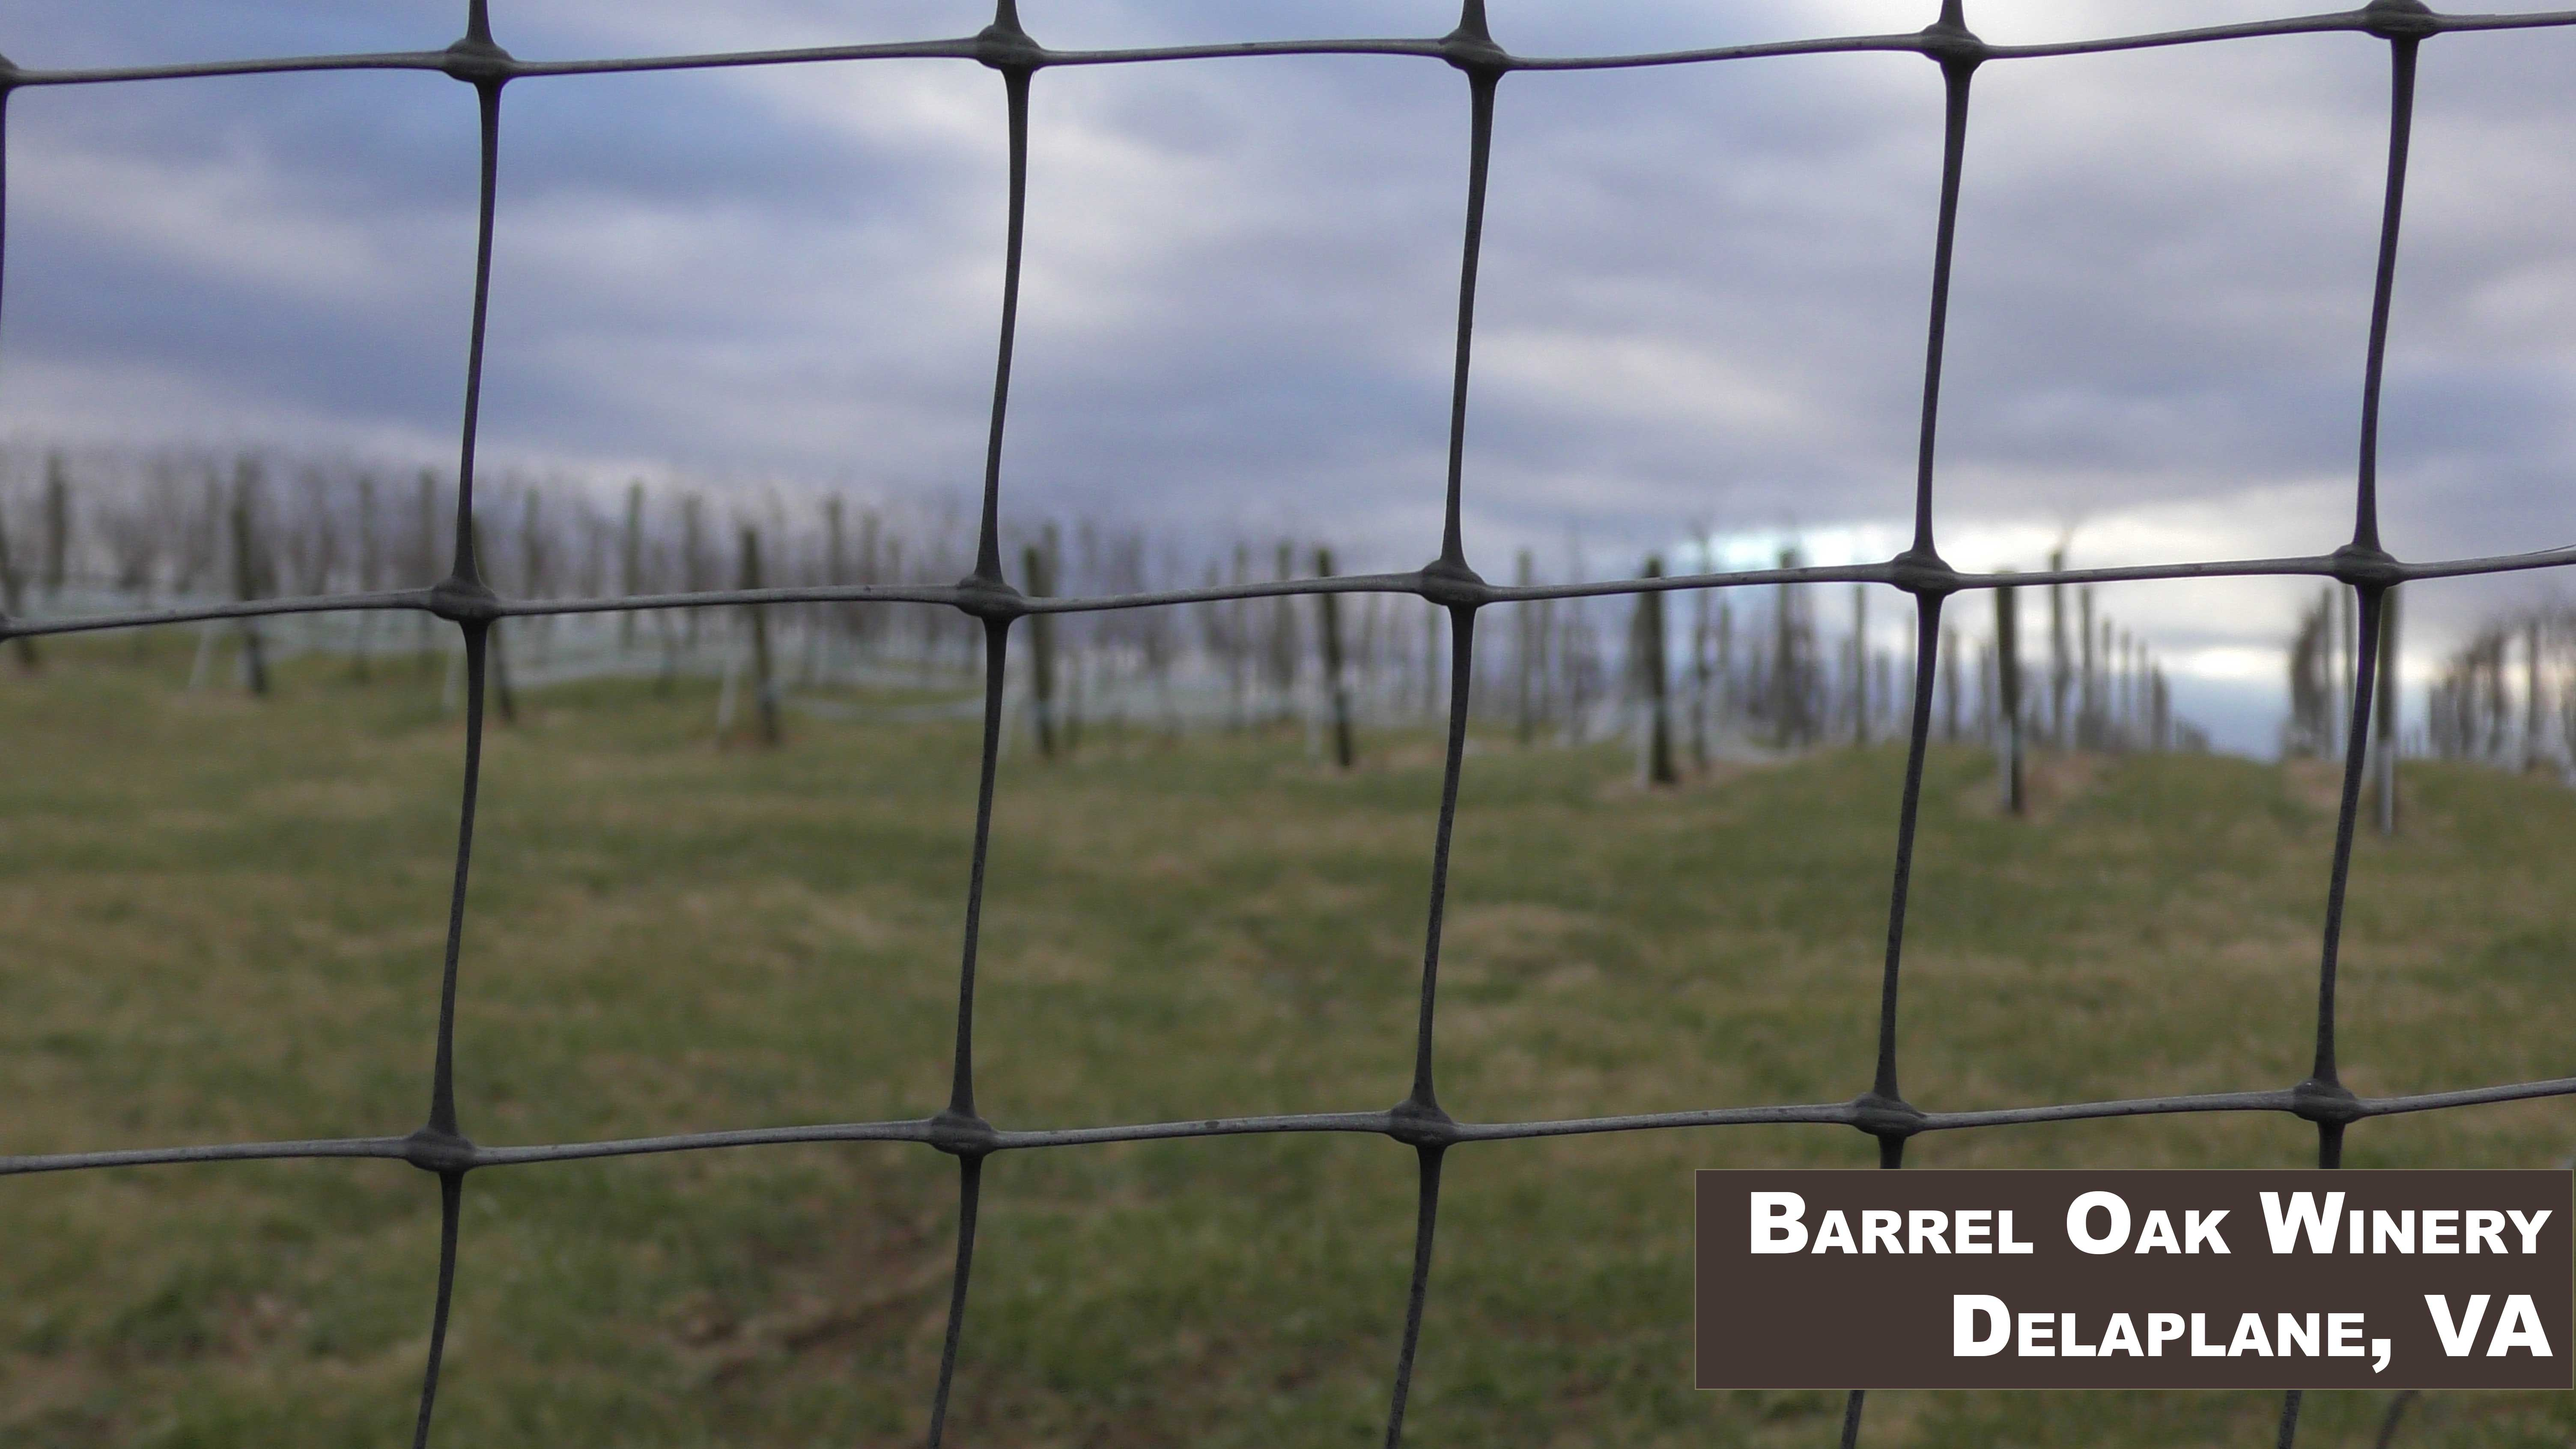 barrel-oak-winery-fence.jpg